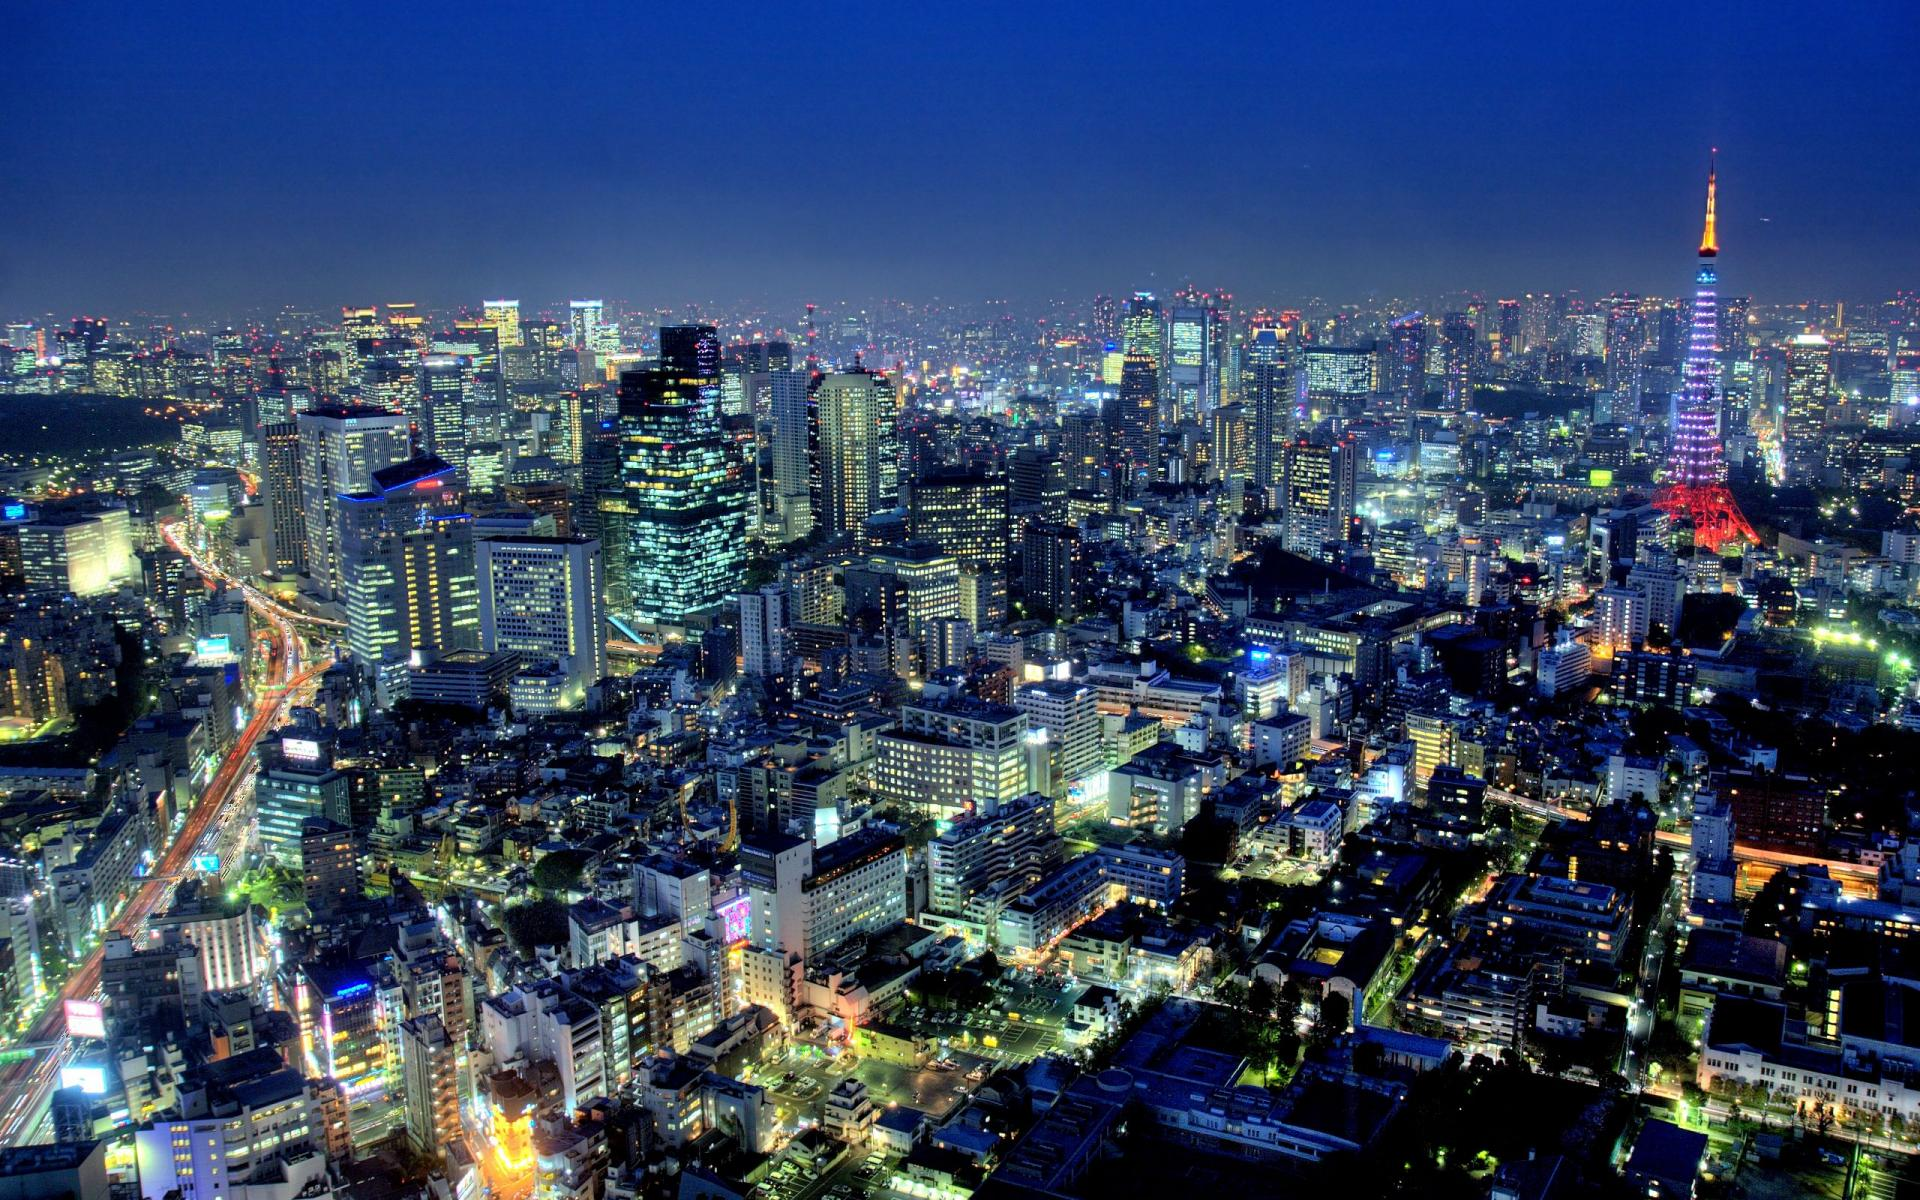 Japan Tokyo At Night Wallpapers Top Free Japan Tokyo At Night Backgrounds Wallpaperaccess